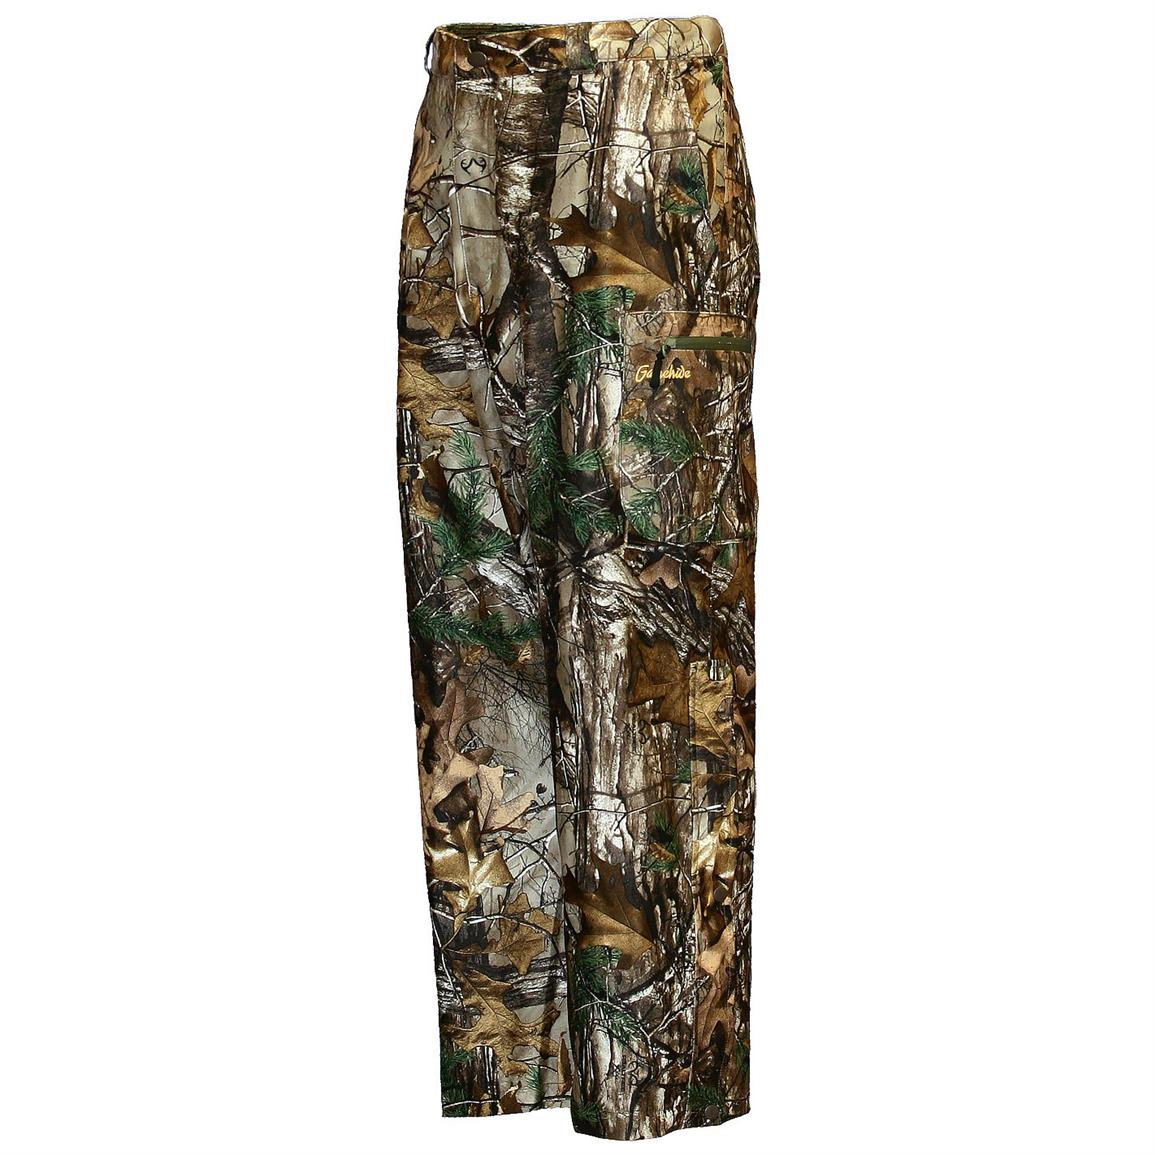 HECS Men's Journey II Hunting Pants, Realtree Xtra